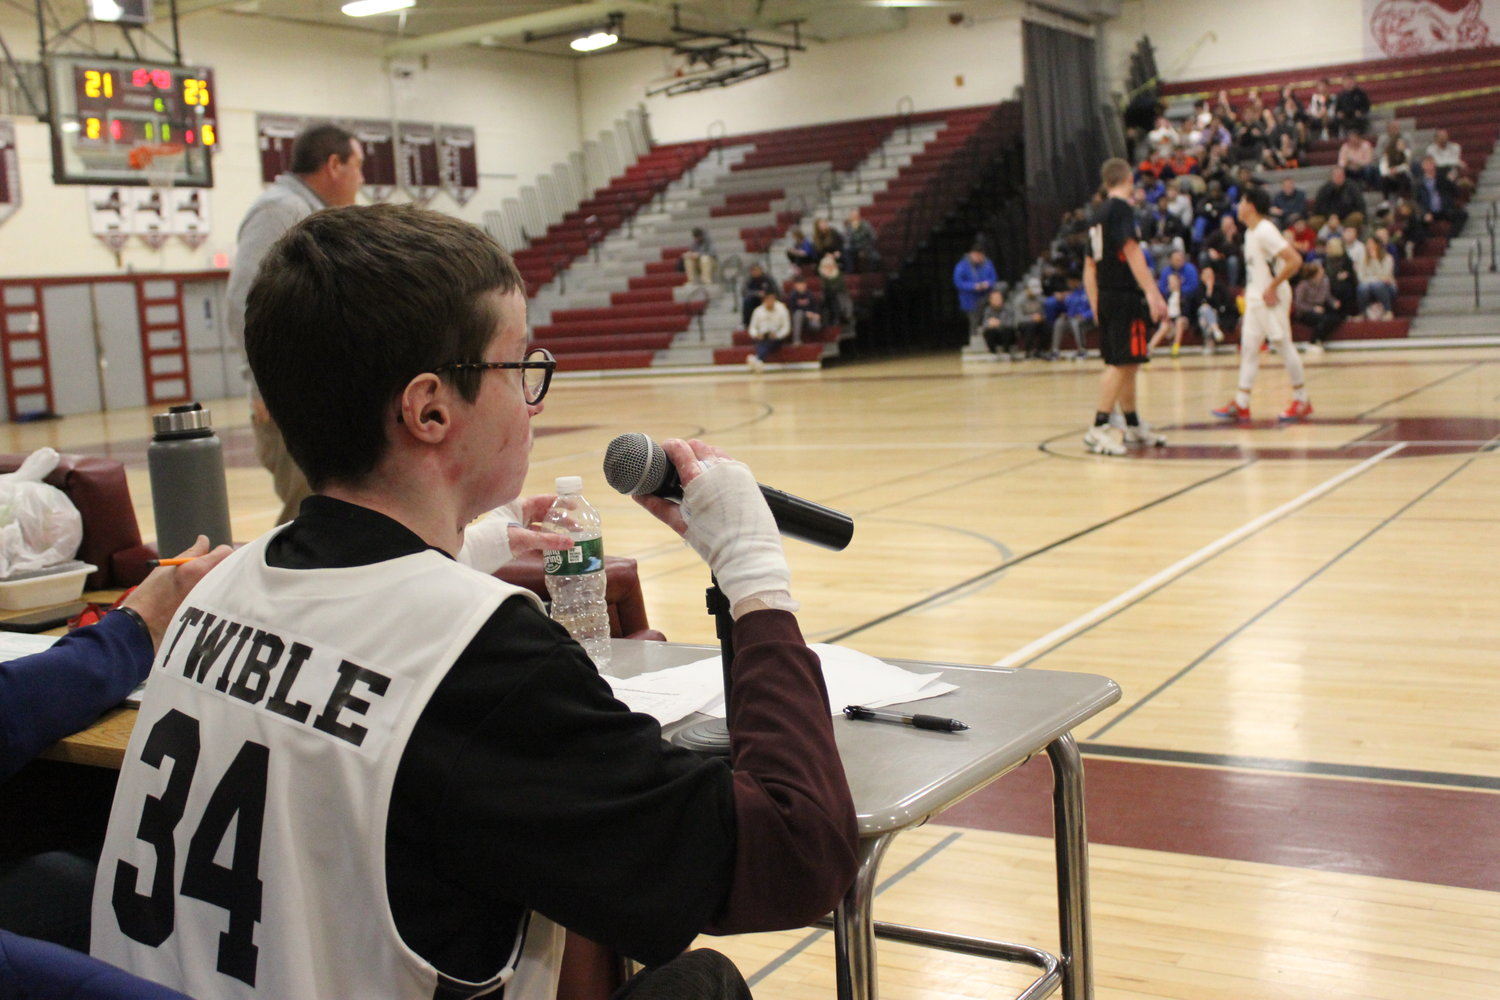 Twible has announced the games at W.T. Clarke High School since his freshman year.